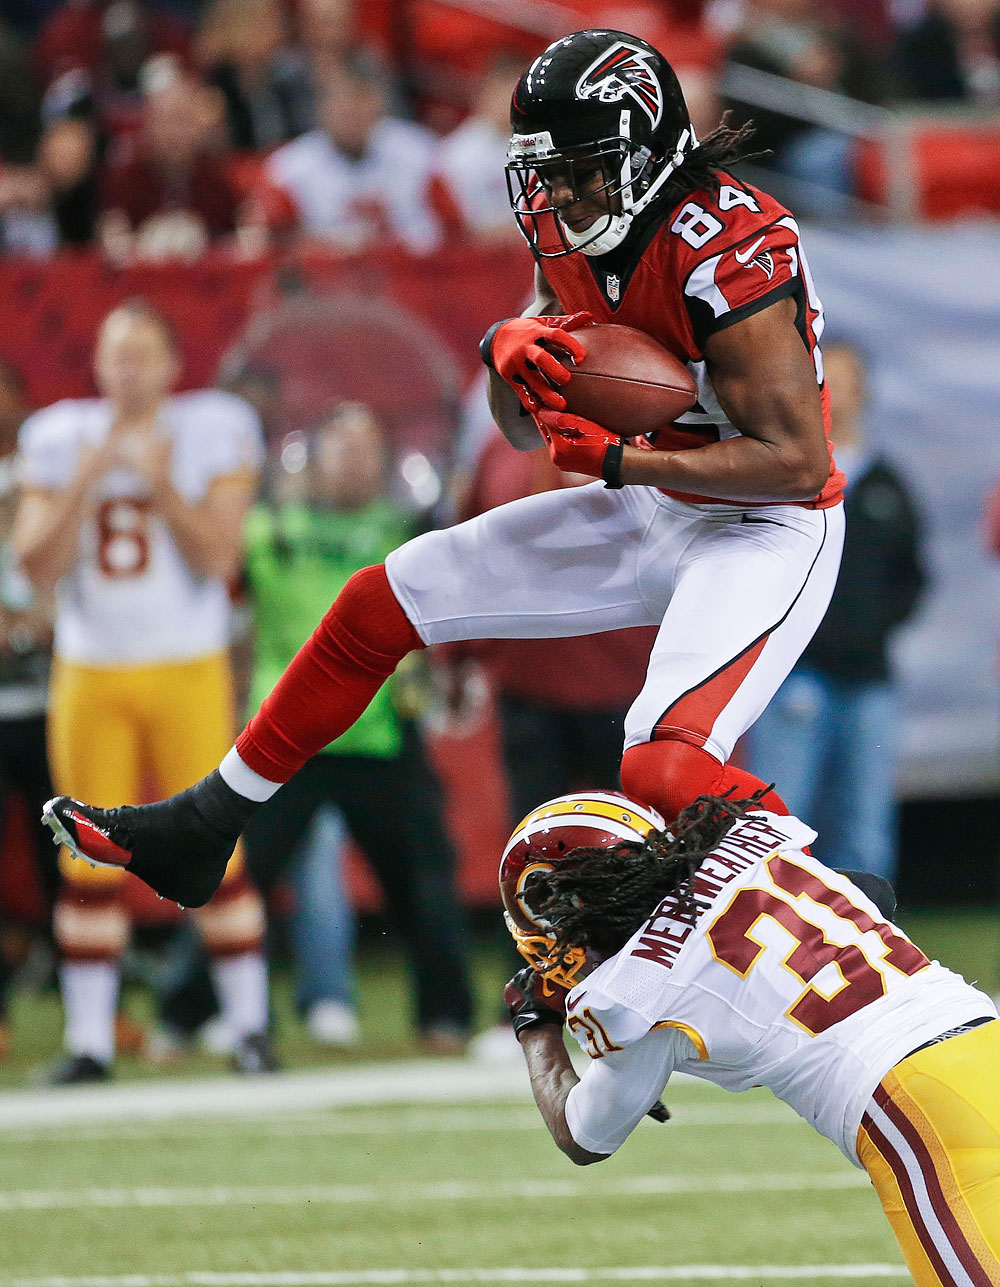 2014 Fantasy Football Rankings: Top 20 WRs